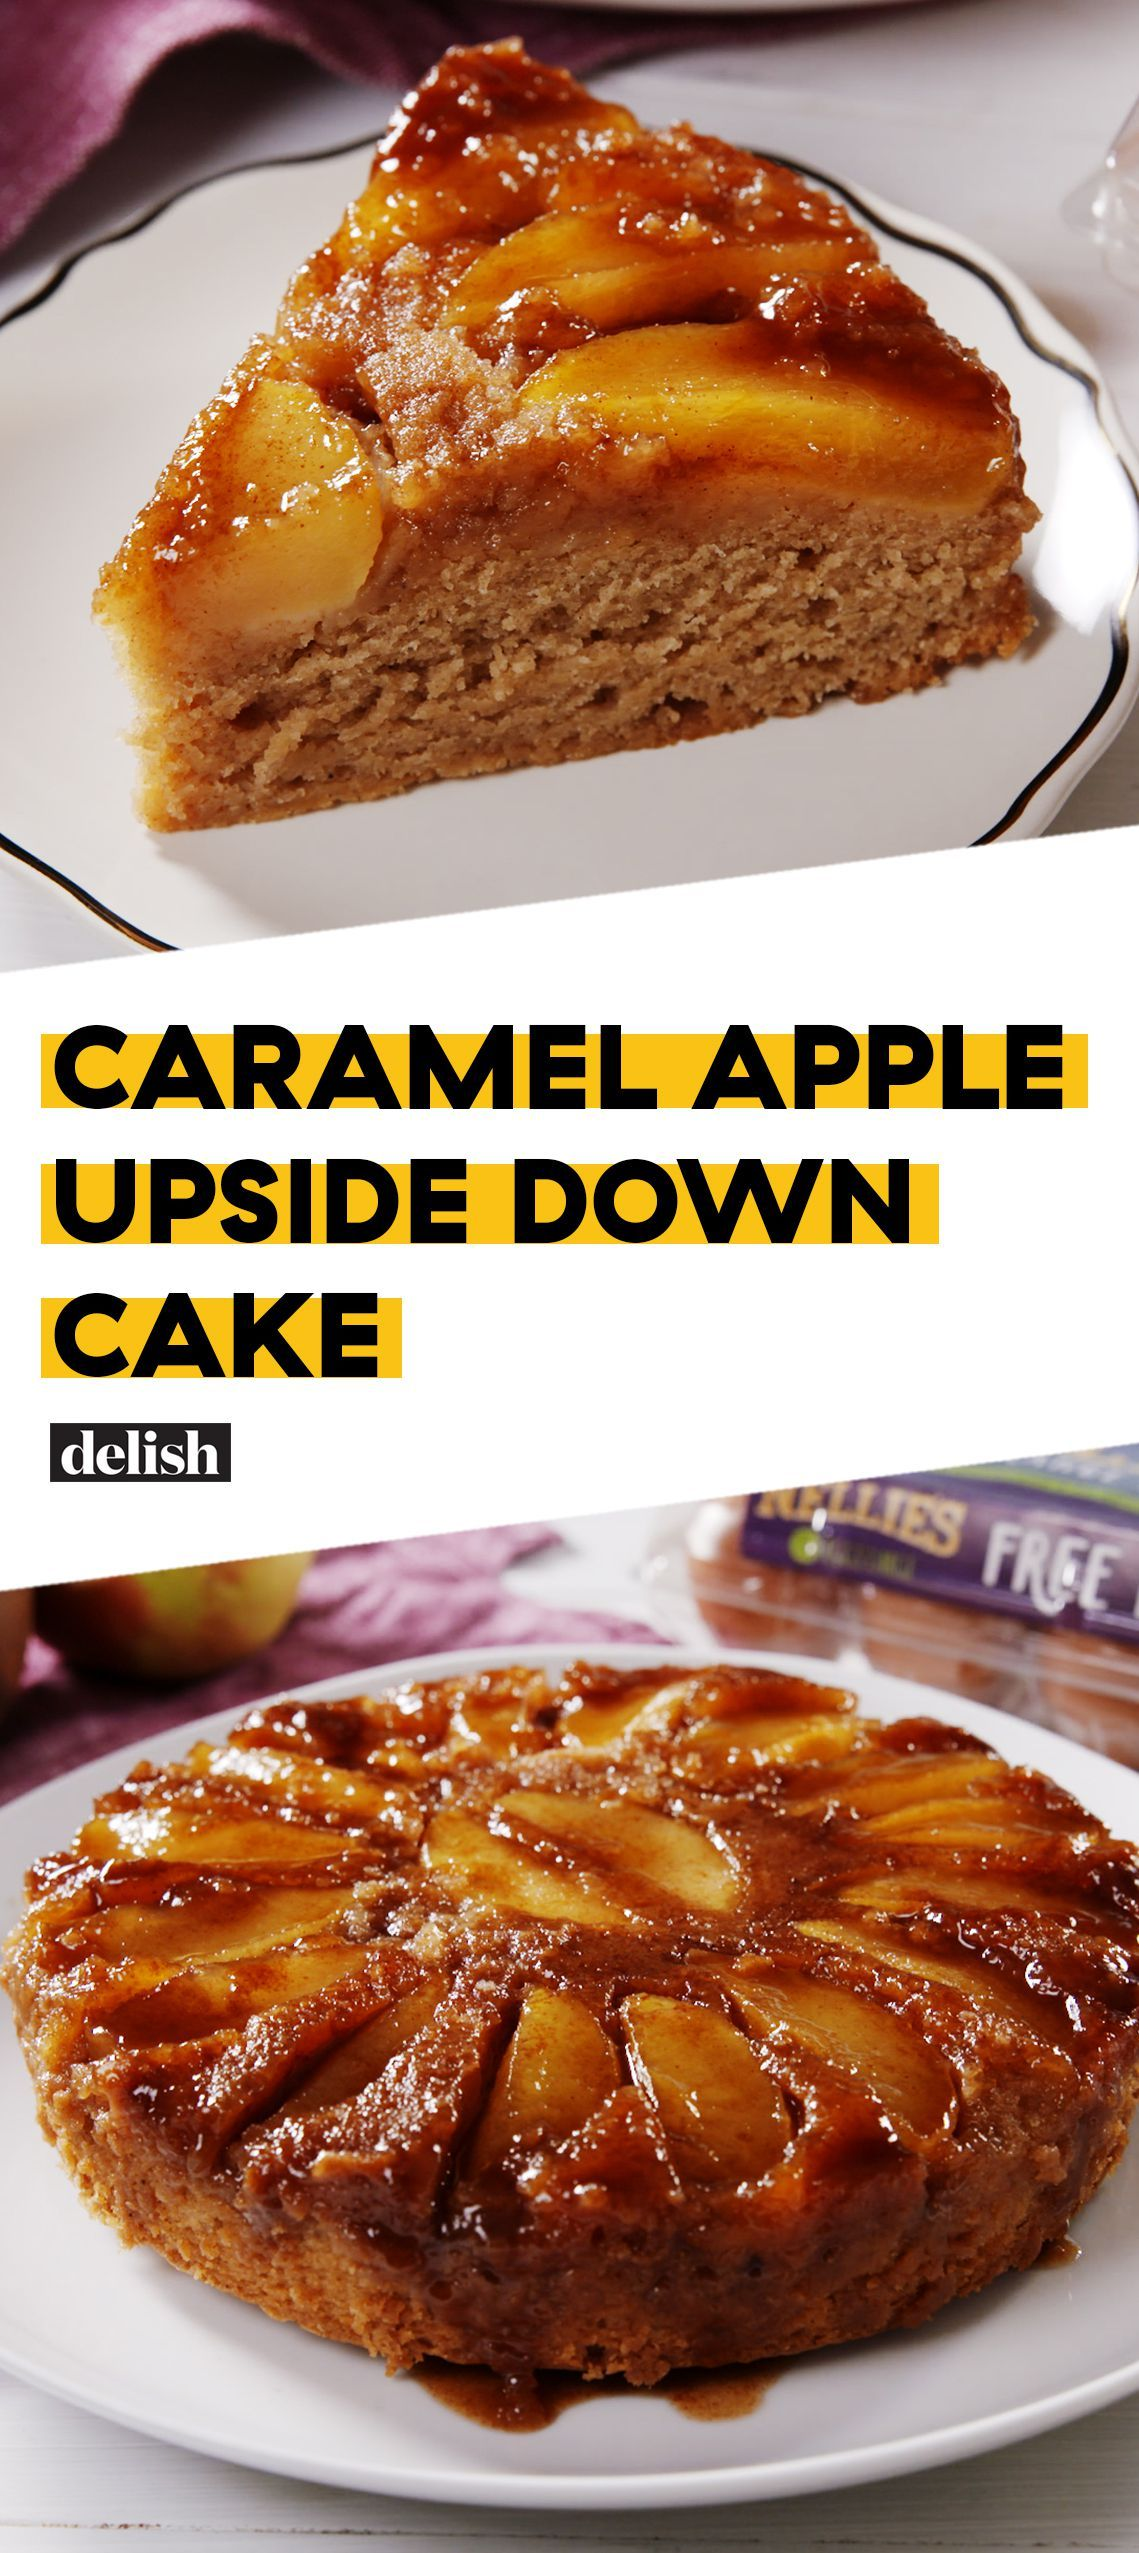 Caramel Apple Upside Down Cake is part of Desserts - After tasting Caramel Apple Upside Down Cake from Delish com, you won't want any other apple cake